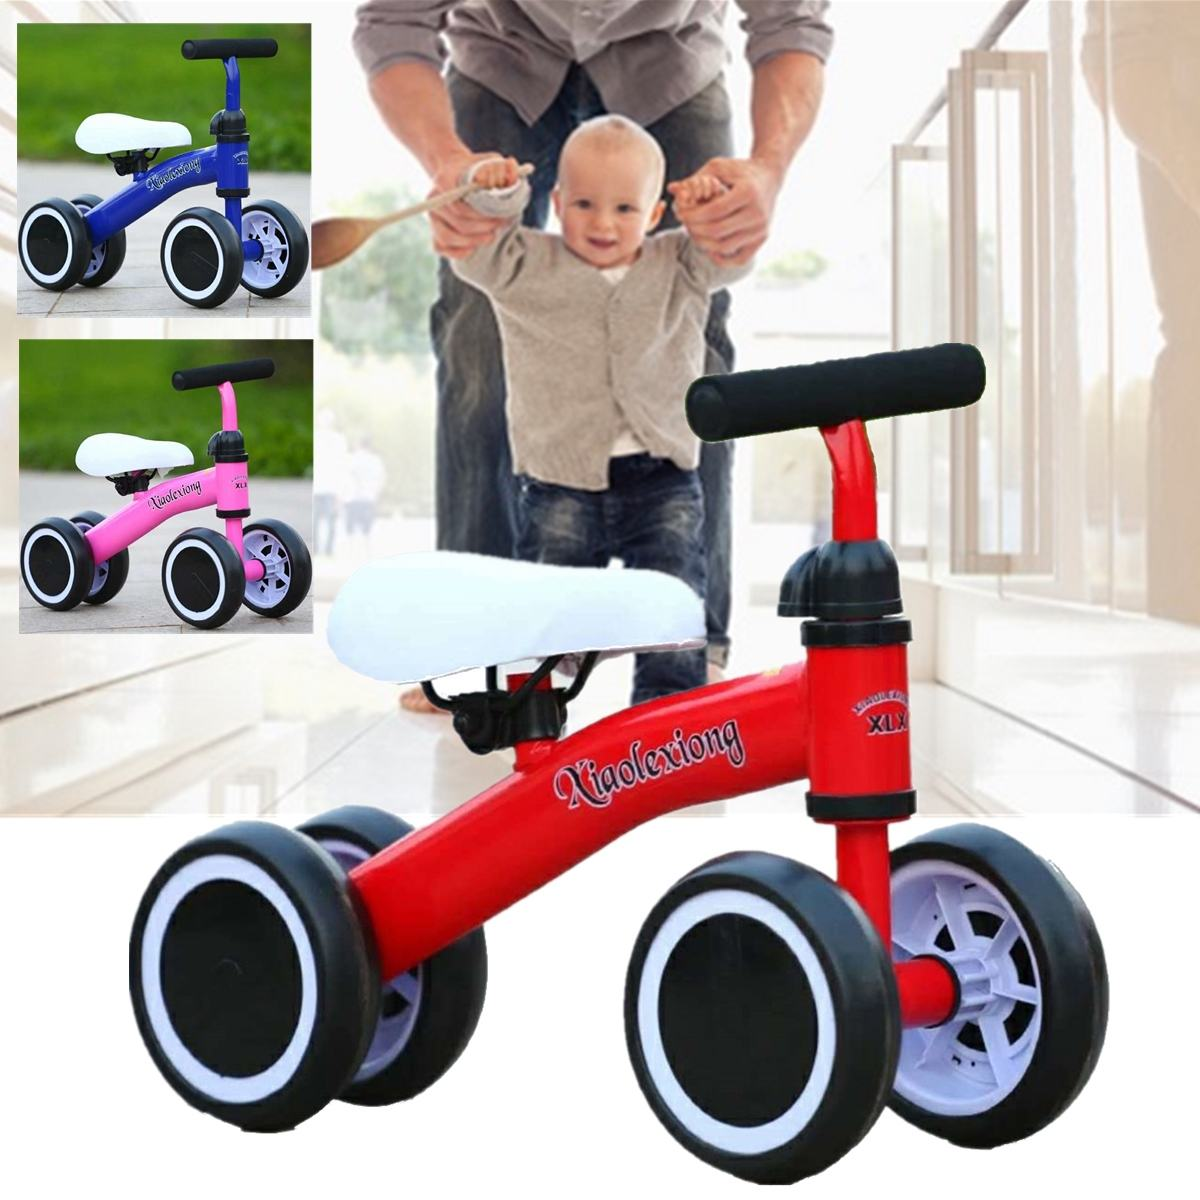 New Children Three Wheel Balance Bike Scooter Baby Walker Portable Bike No Foot Pedal Bicycle Baby Walker Tricycle Riding Toys In Short Supply Mother & Kids